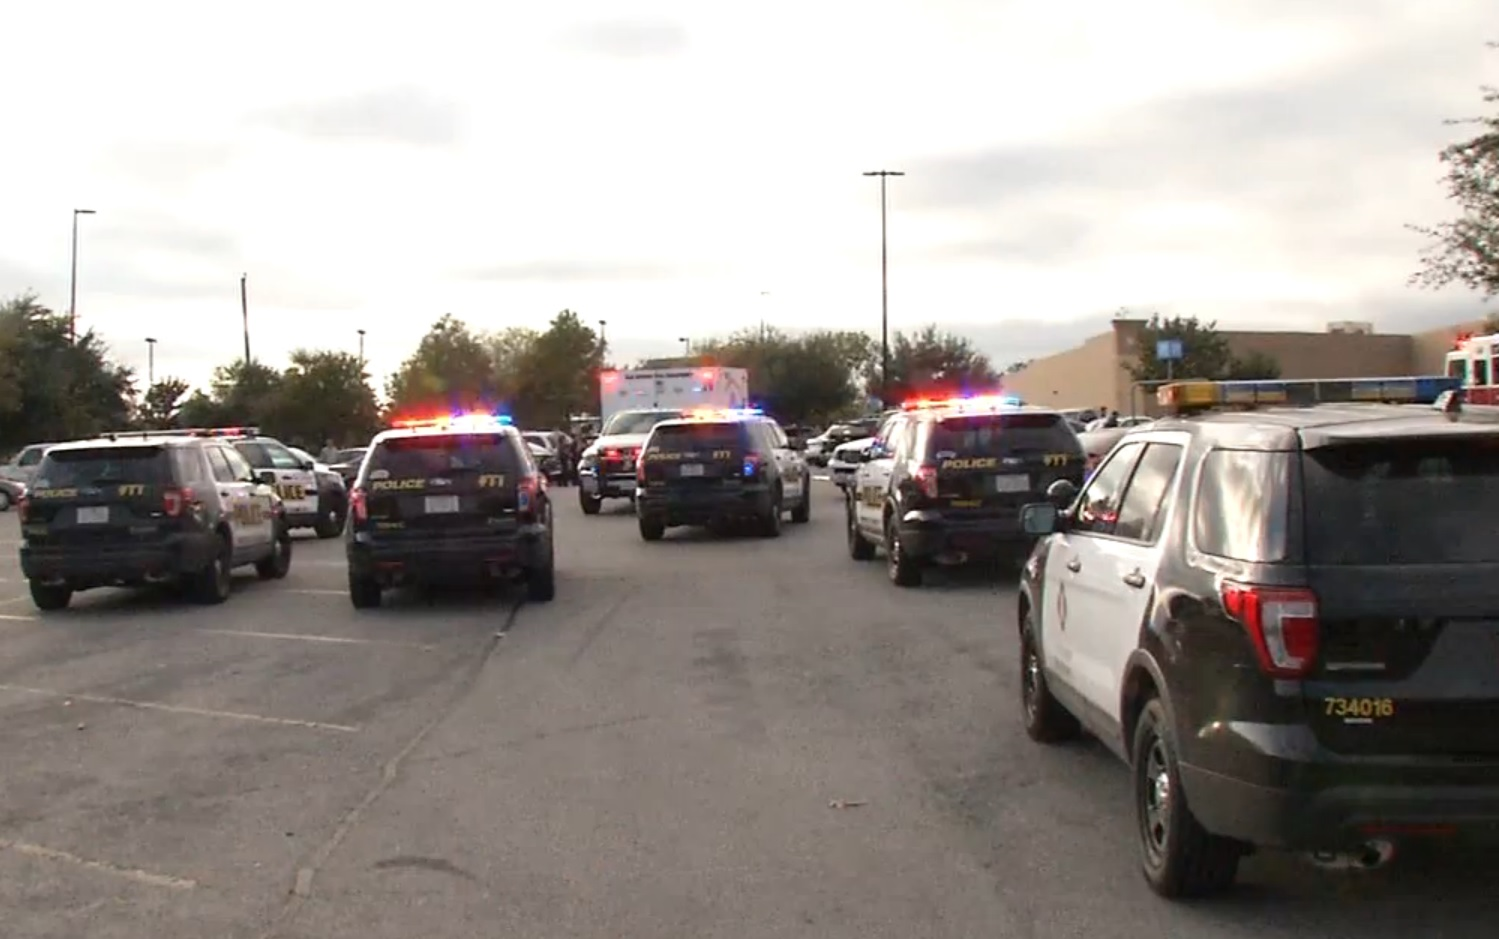 Black Friday Death Toll Rises To 3 After Fatal Shootings